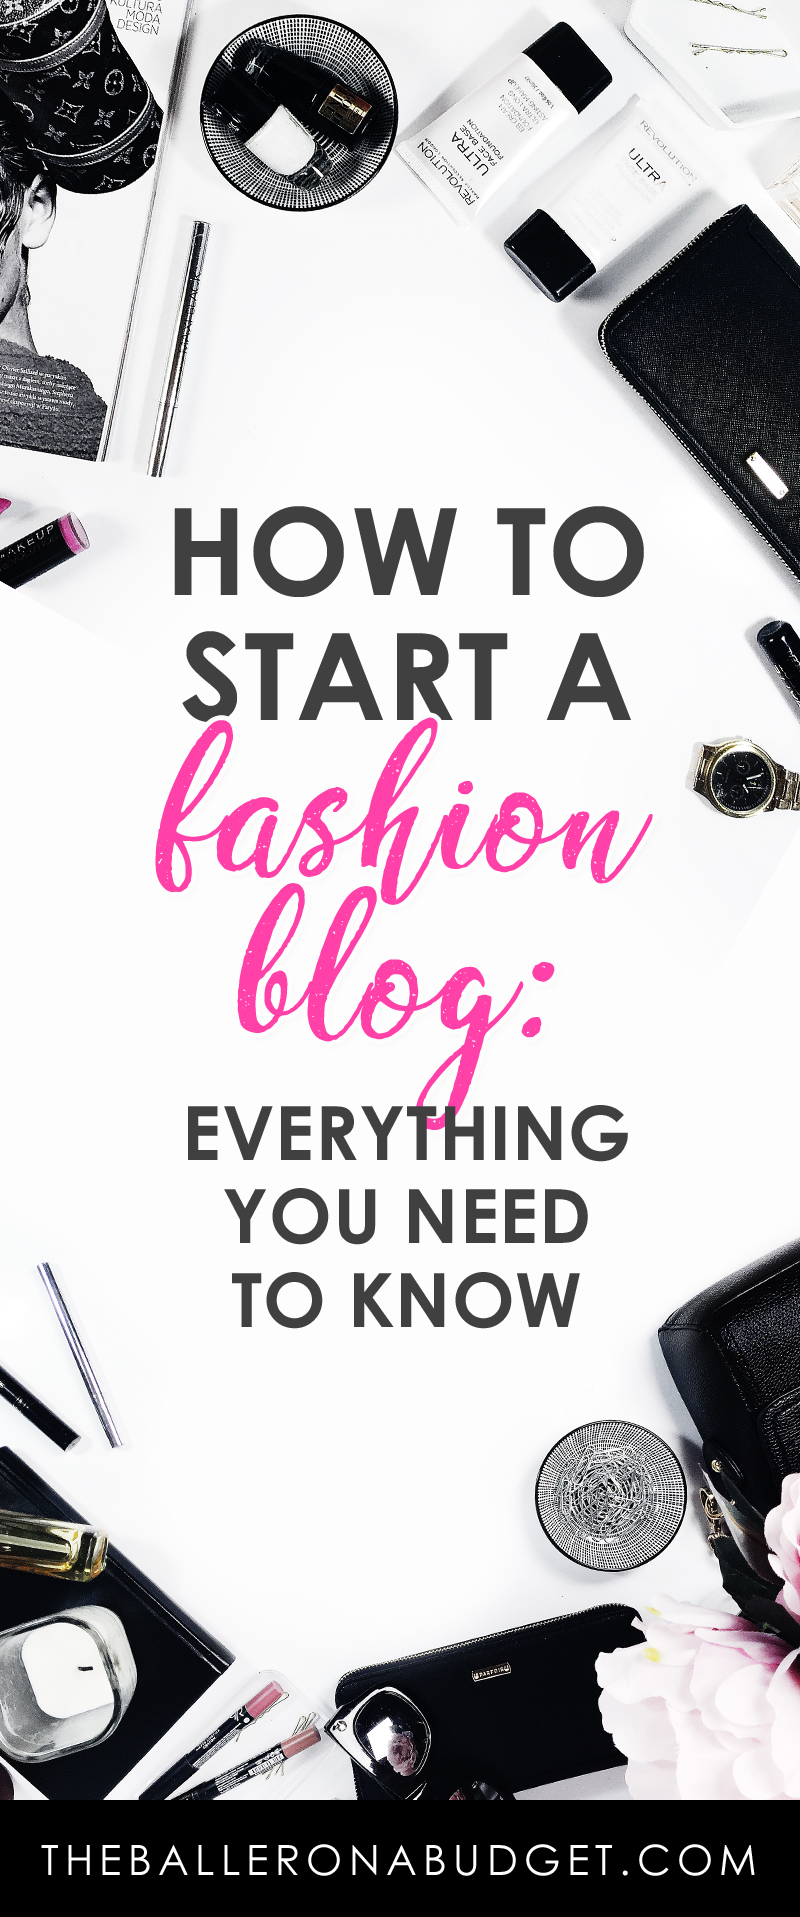 How To Start A Fashion Blog The Ultimate Guide The Baller On A